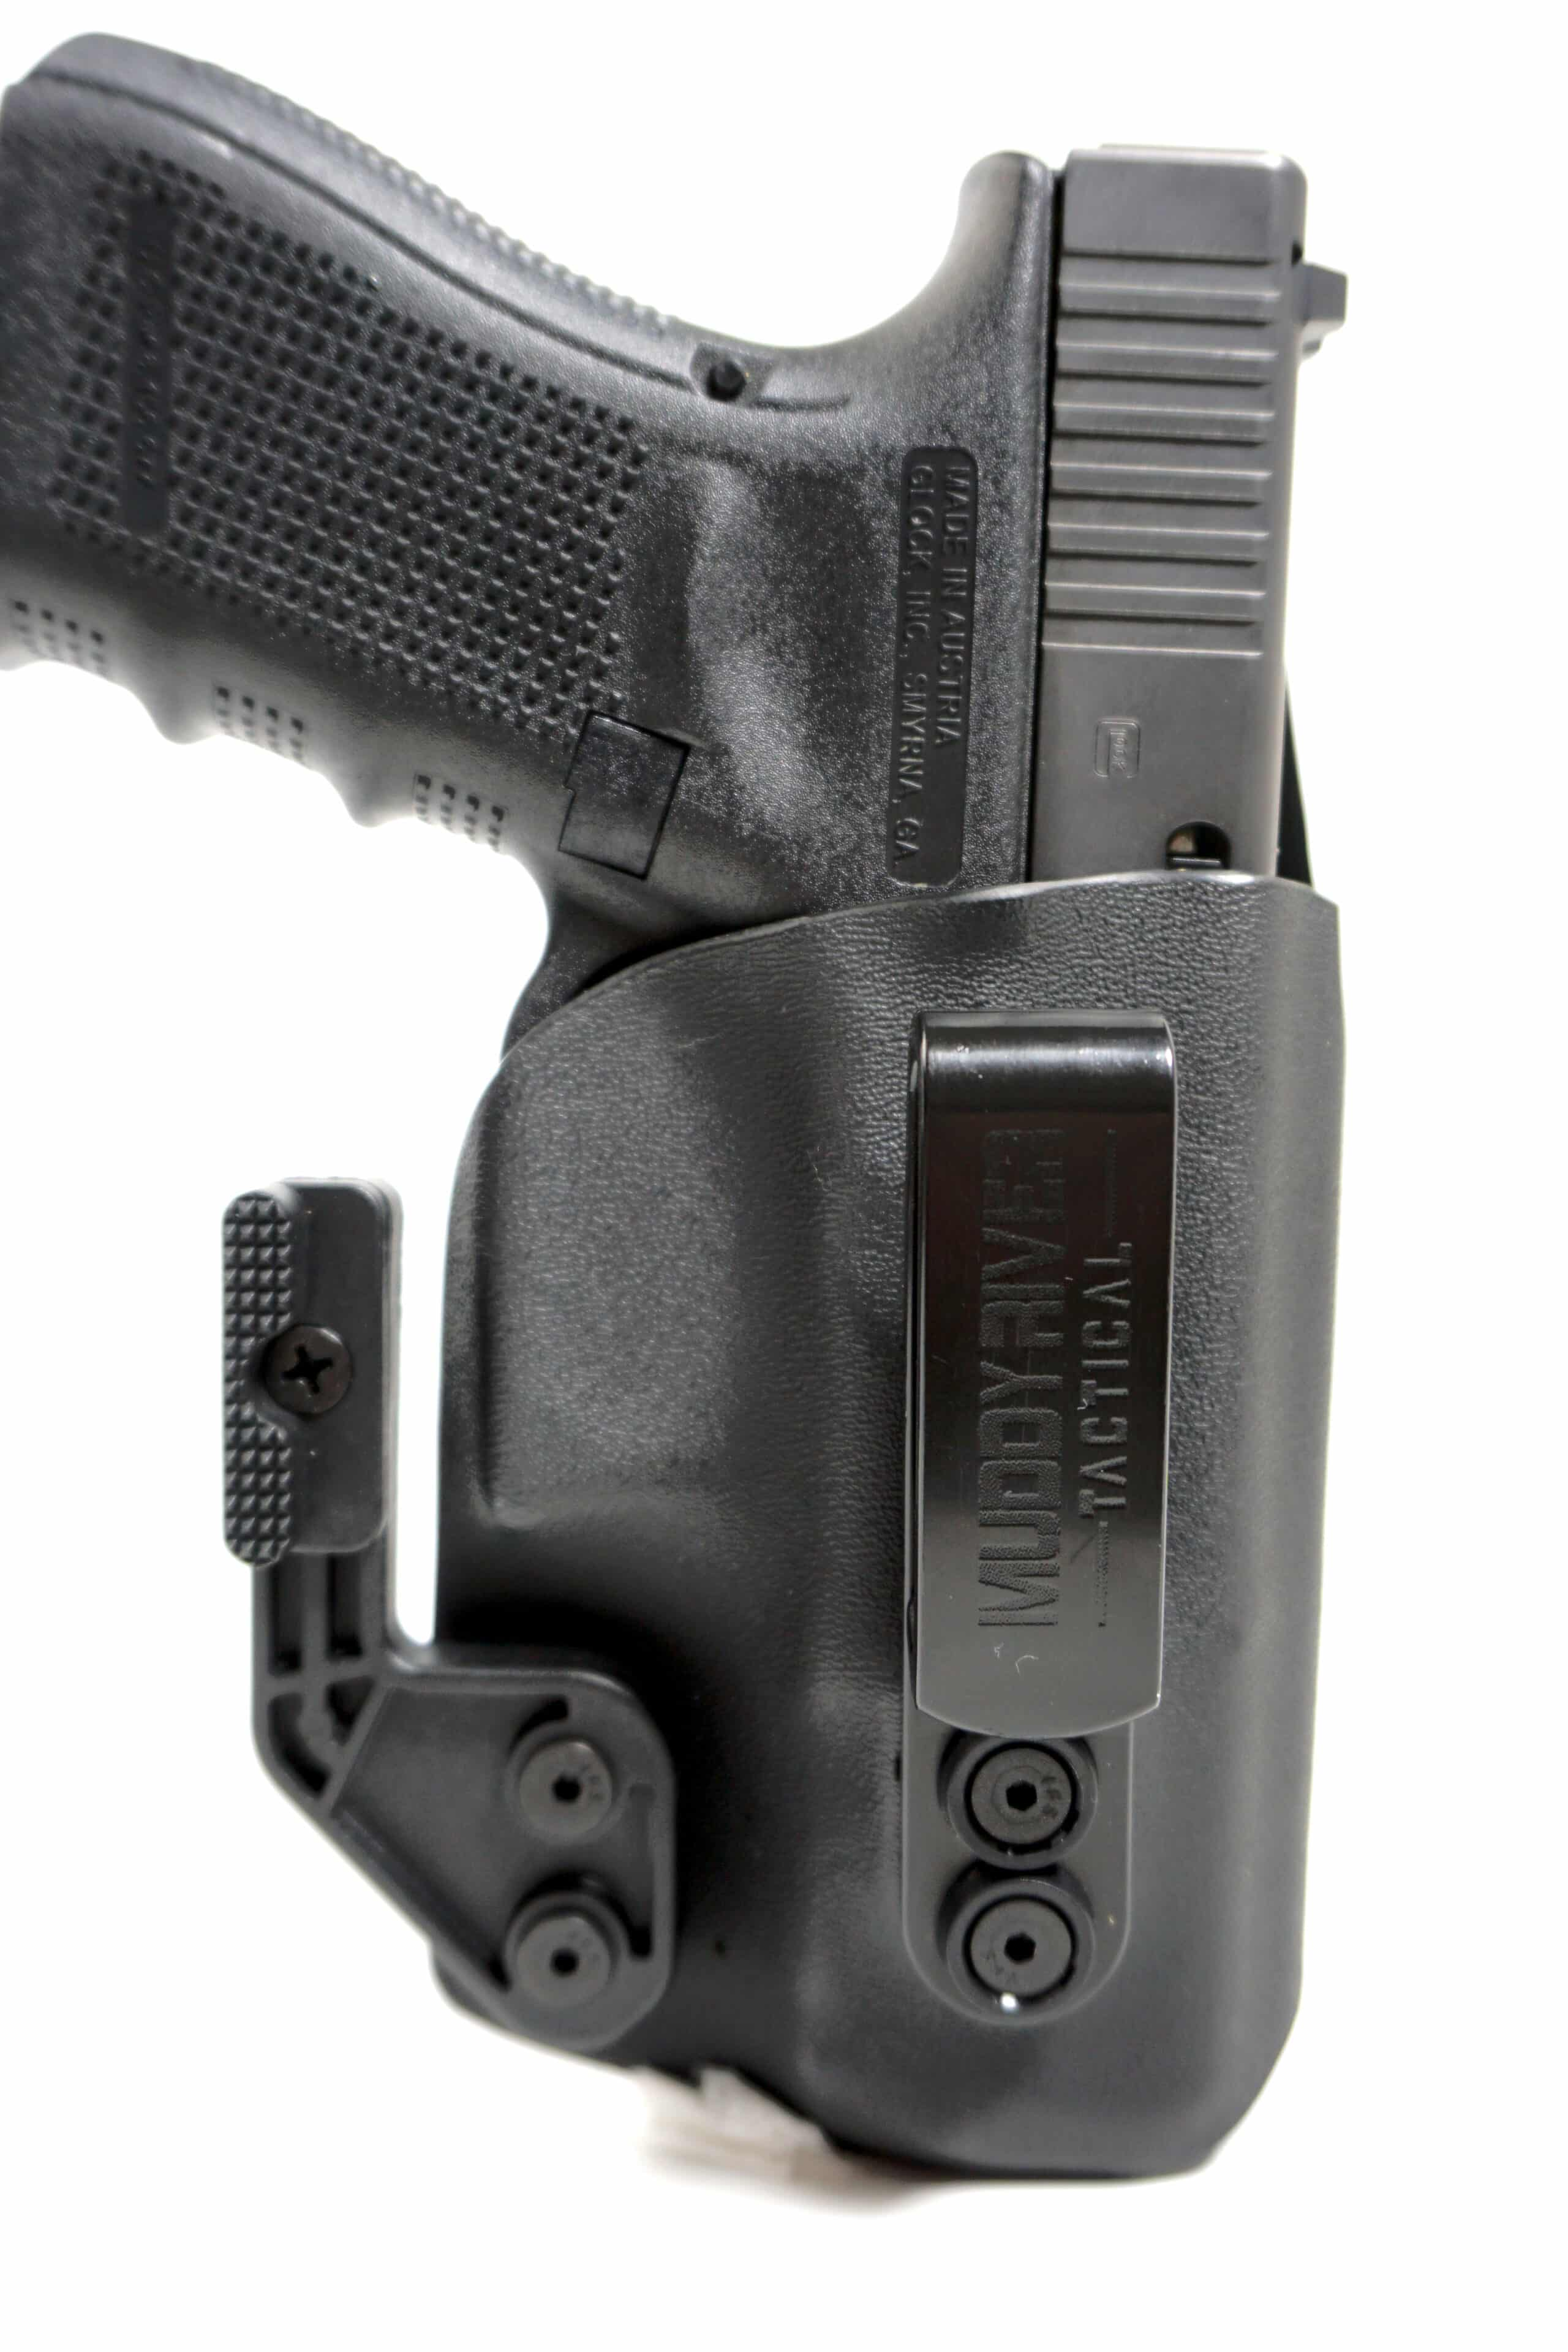 Fnh Fn 5 7 Mk2 Iwb Kydex Holster Made In U S A Lifetime Warranty